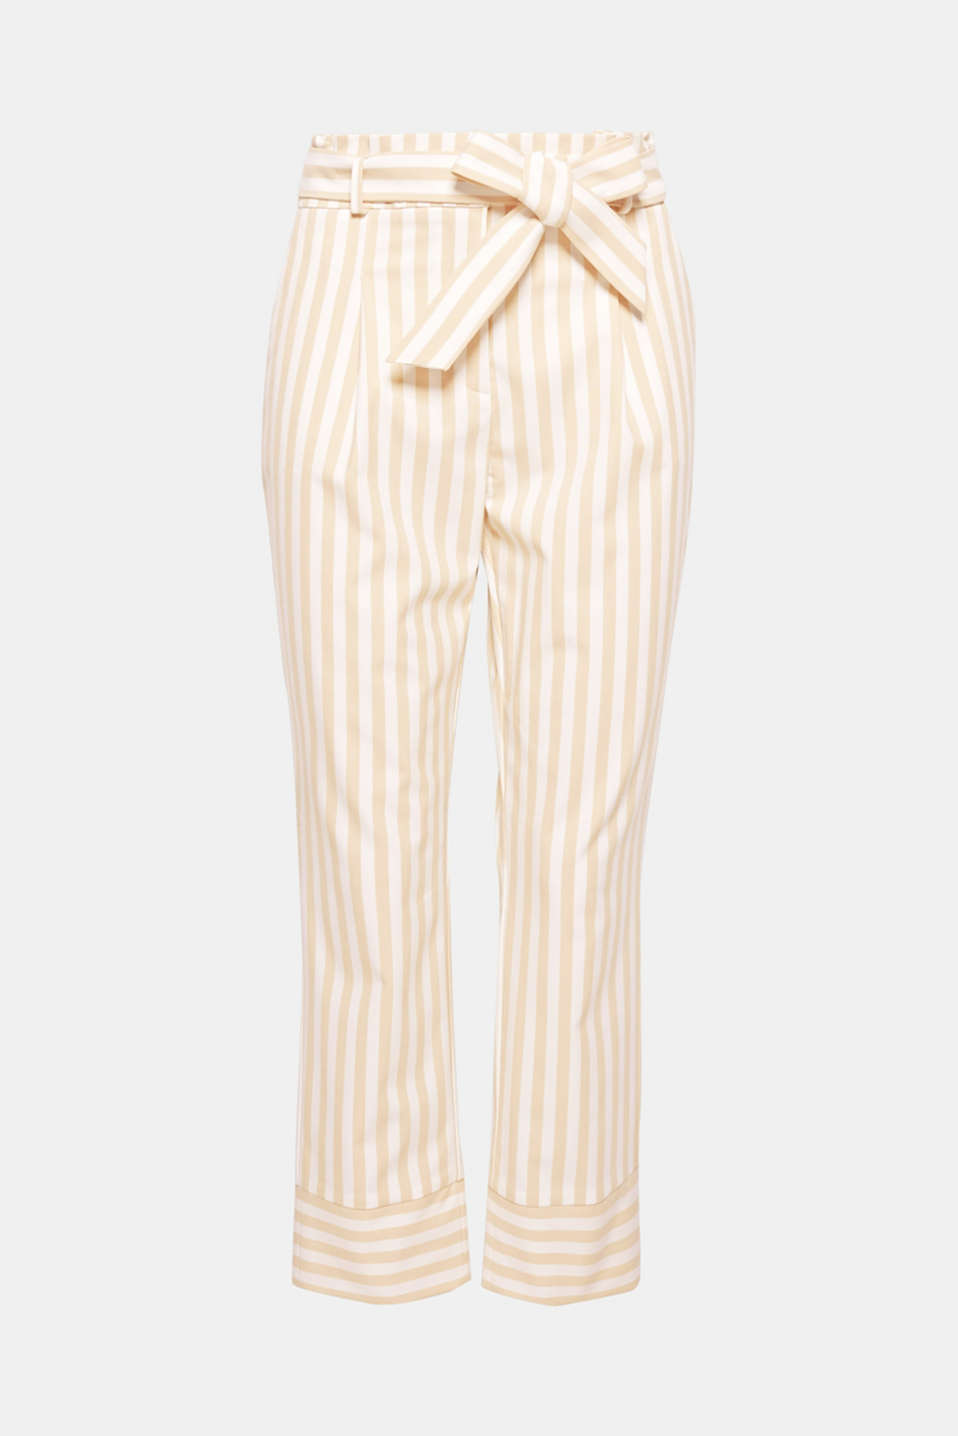 These new fashion trousers finished in a trendy, paperbag design featuring a lightly gathered waistband, modern stripes and deep hem trims are guaranteed to round off your look!